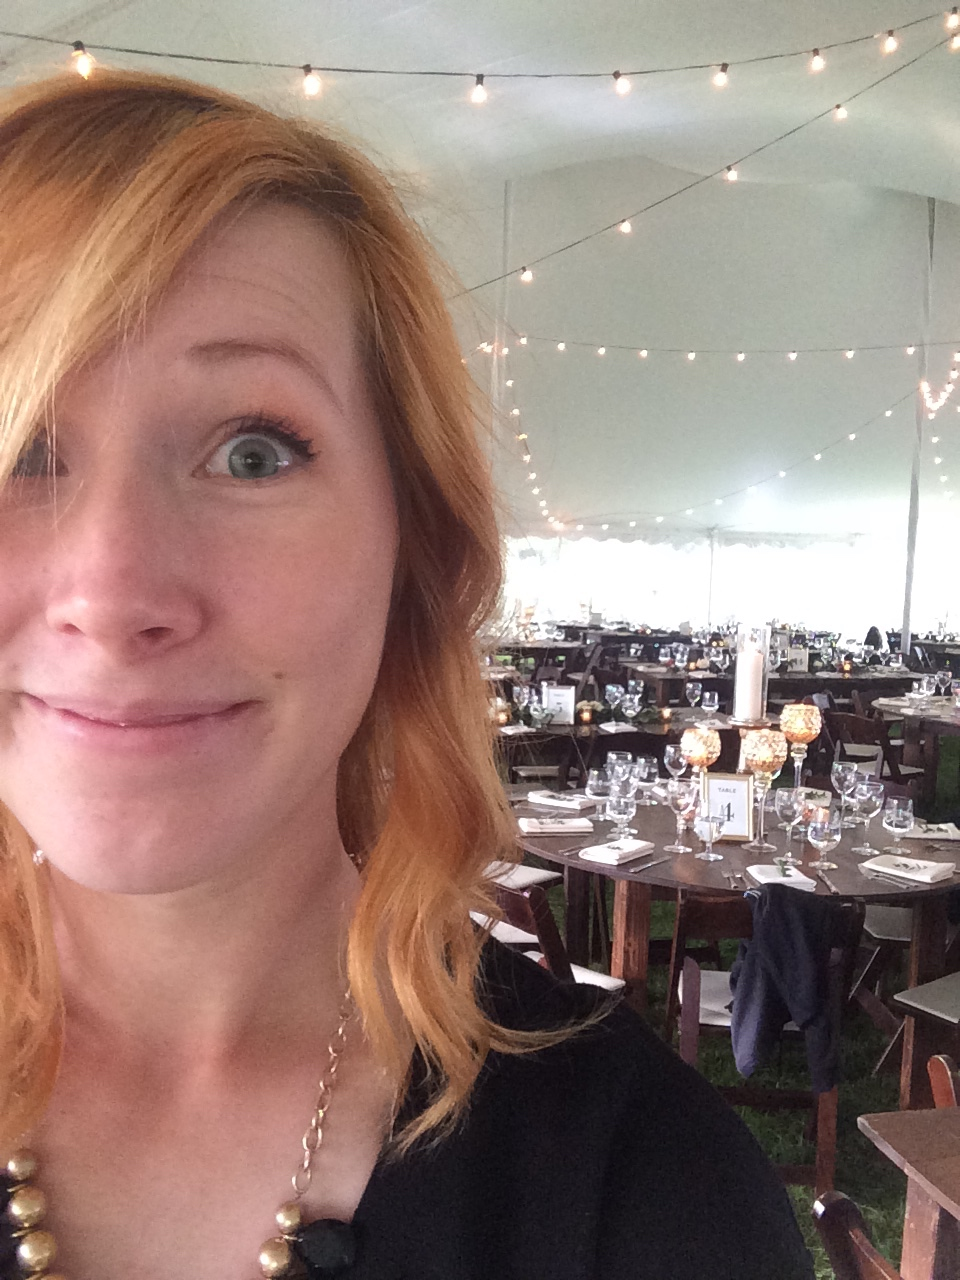 Wedding day selfie! This day was so fun!